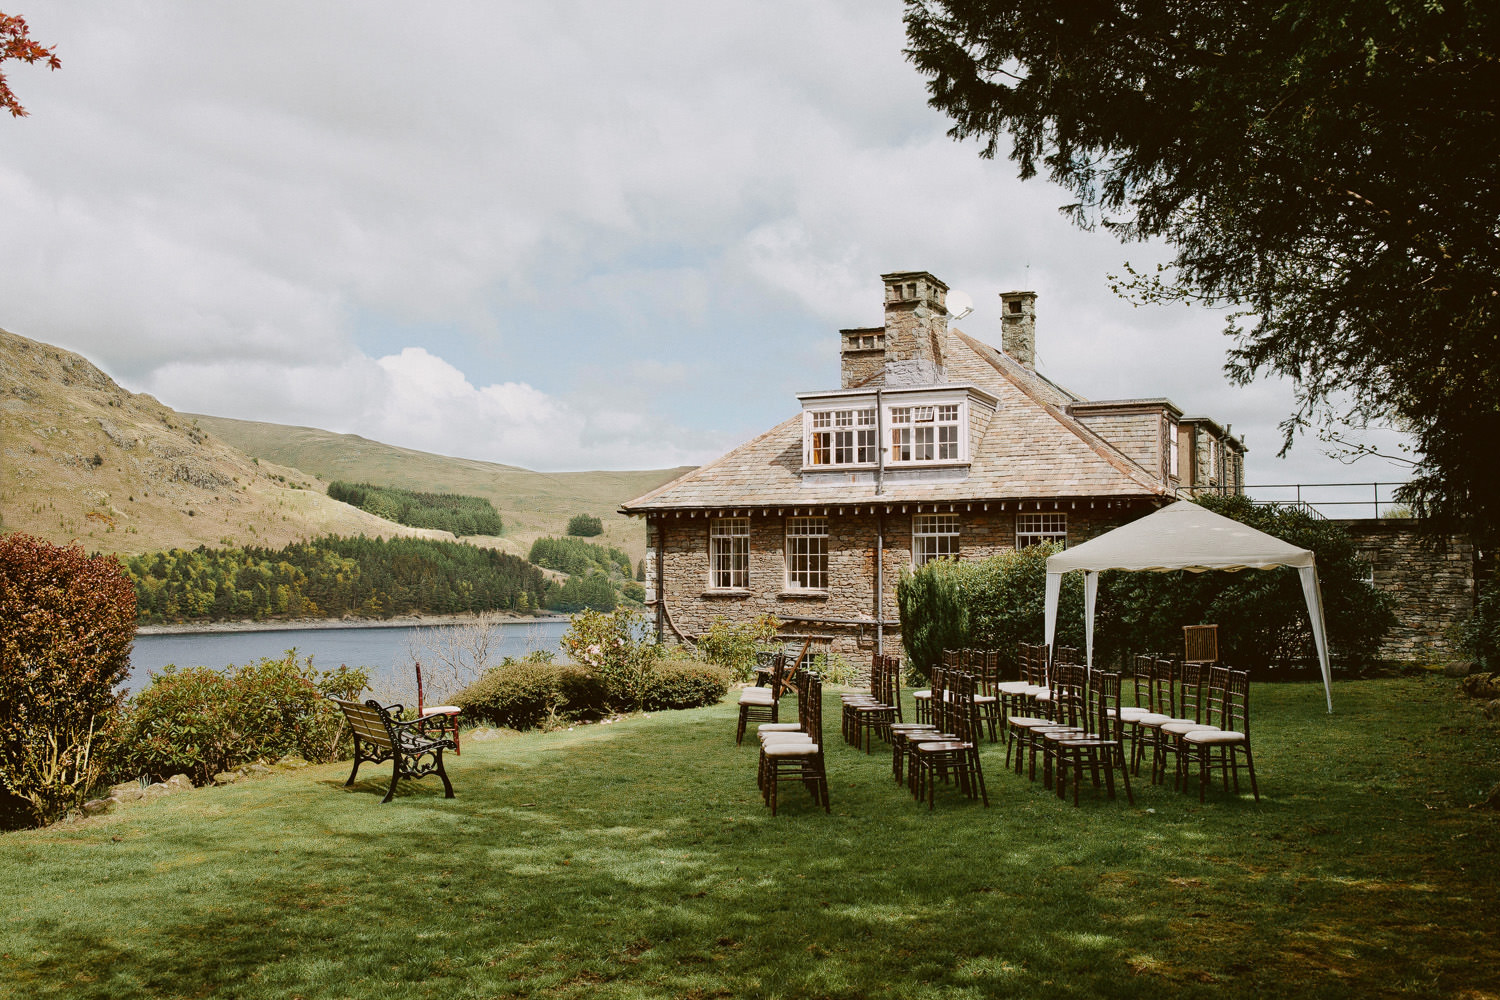 Haweswater Hotel and surrounding hills